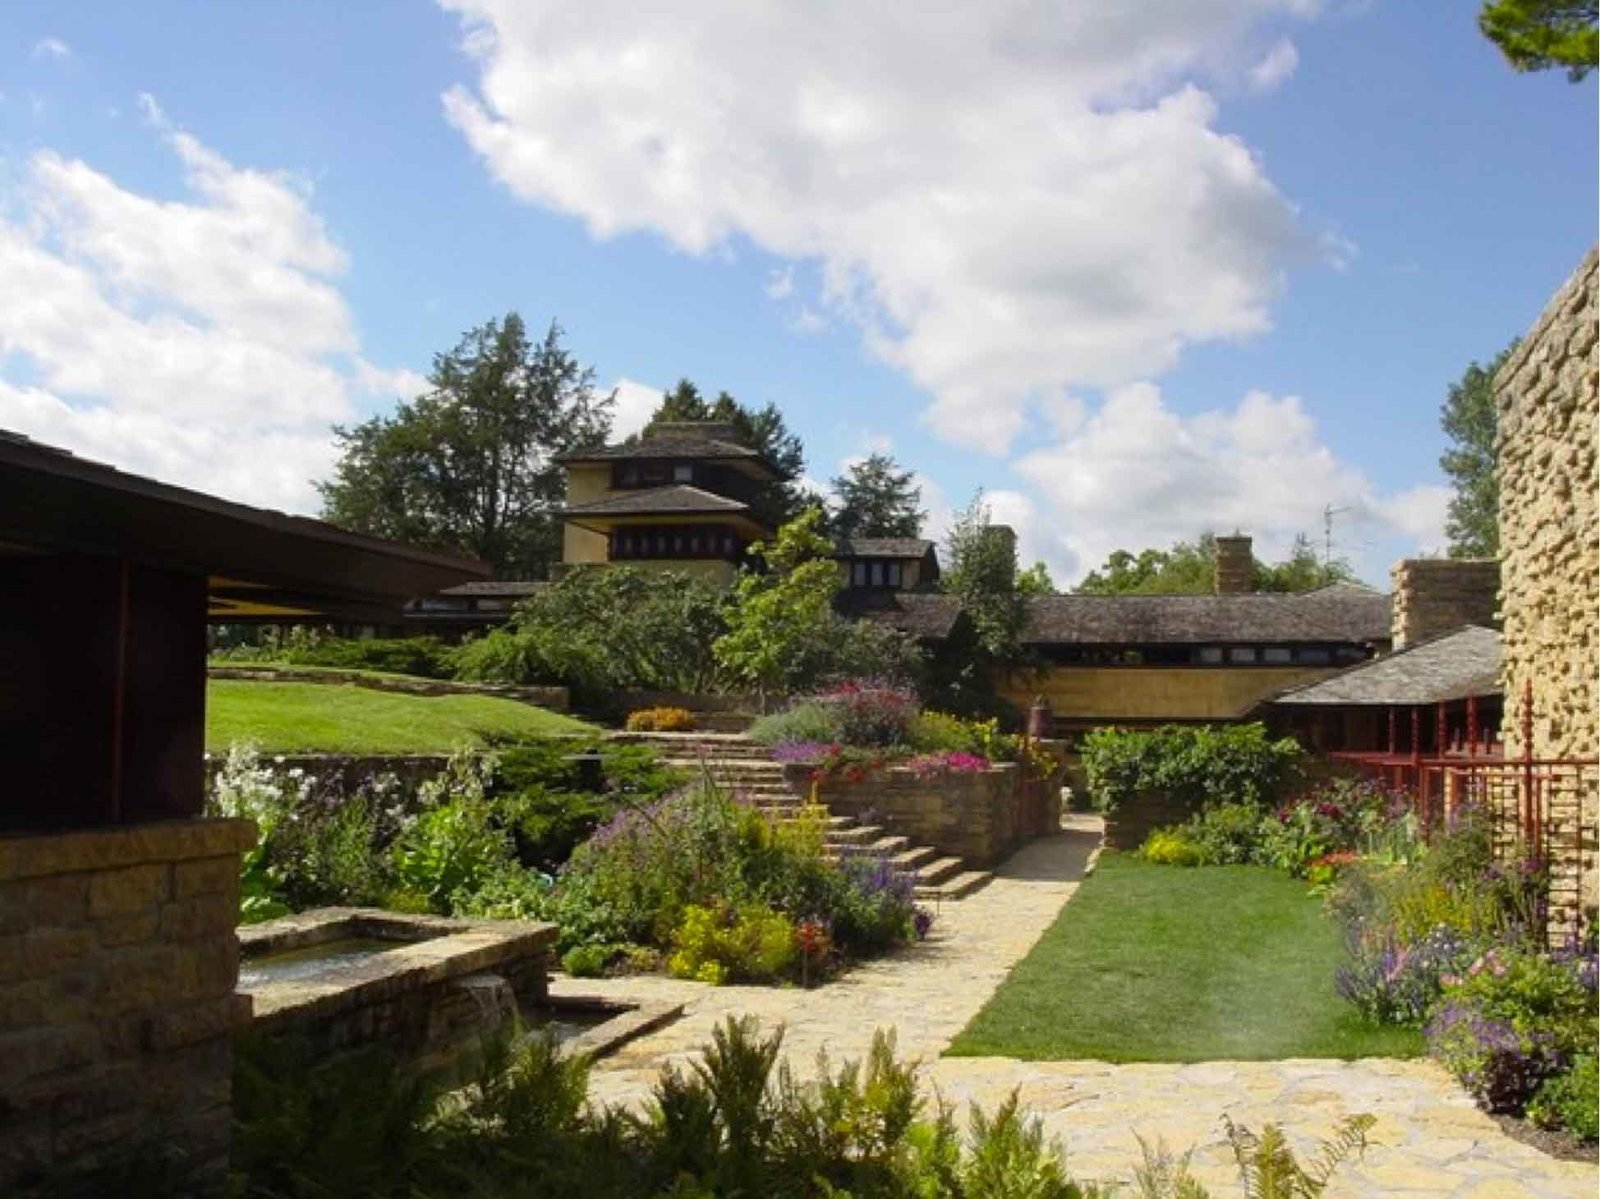 Taliesin (1911, Spring Green, Wisconsin). Wright's home and studio, rebuilt after two fires, is a peaceful retreat that demonstrates the architect's graceful merging of architecture and landscape.  Iconic Frank Lloyd Wright Buildings by Allie Weiss